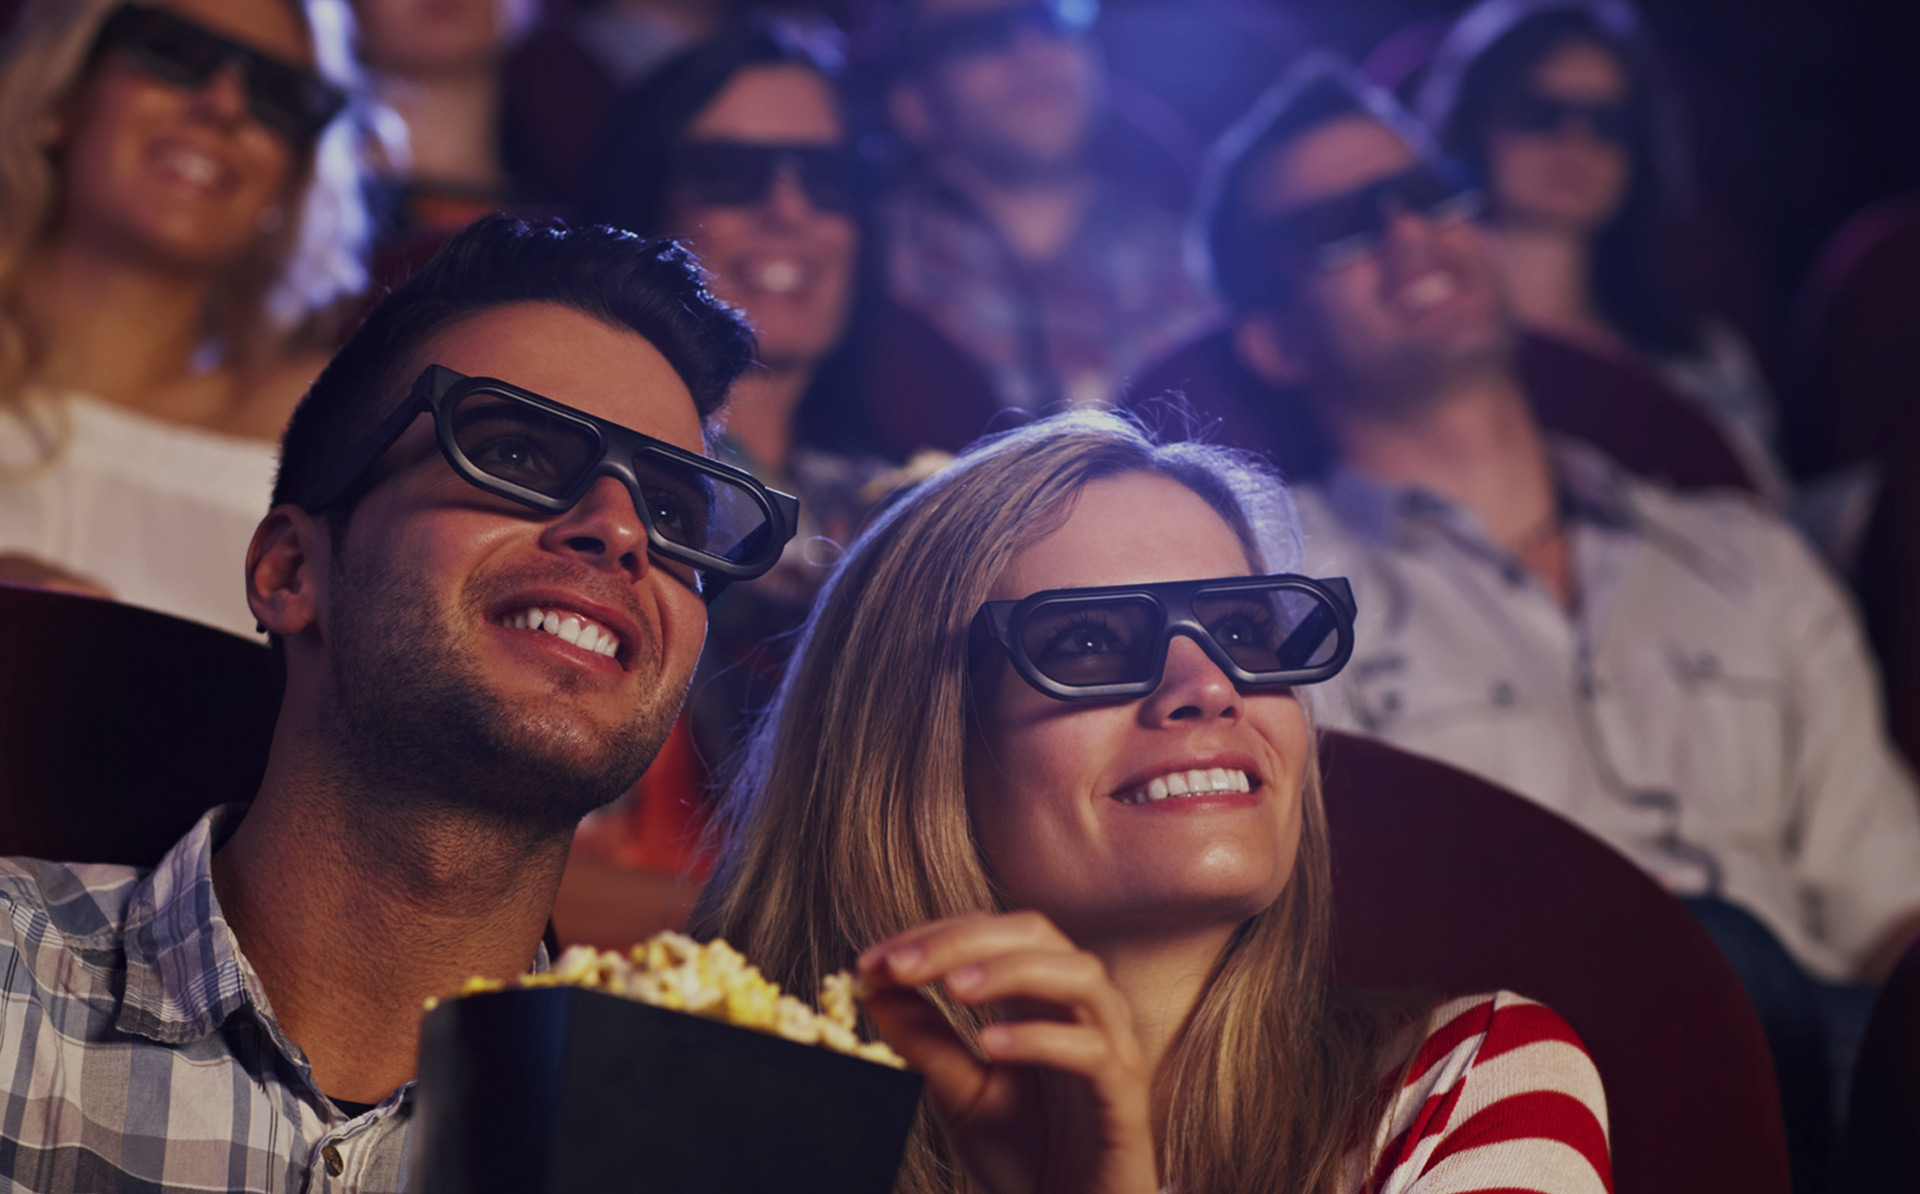 A man and woman at the cinema with 3D glasses enjoying popcorn.